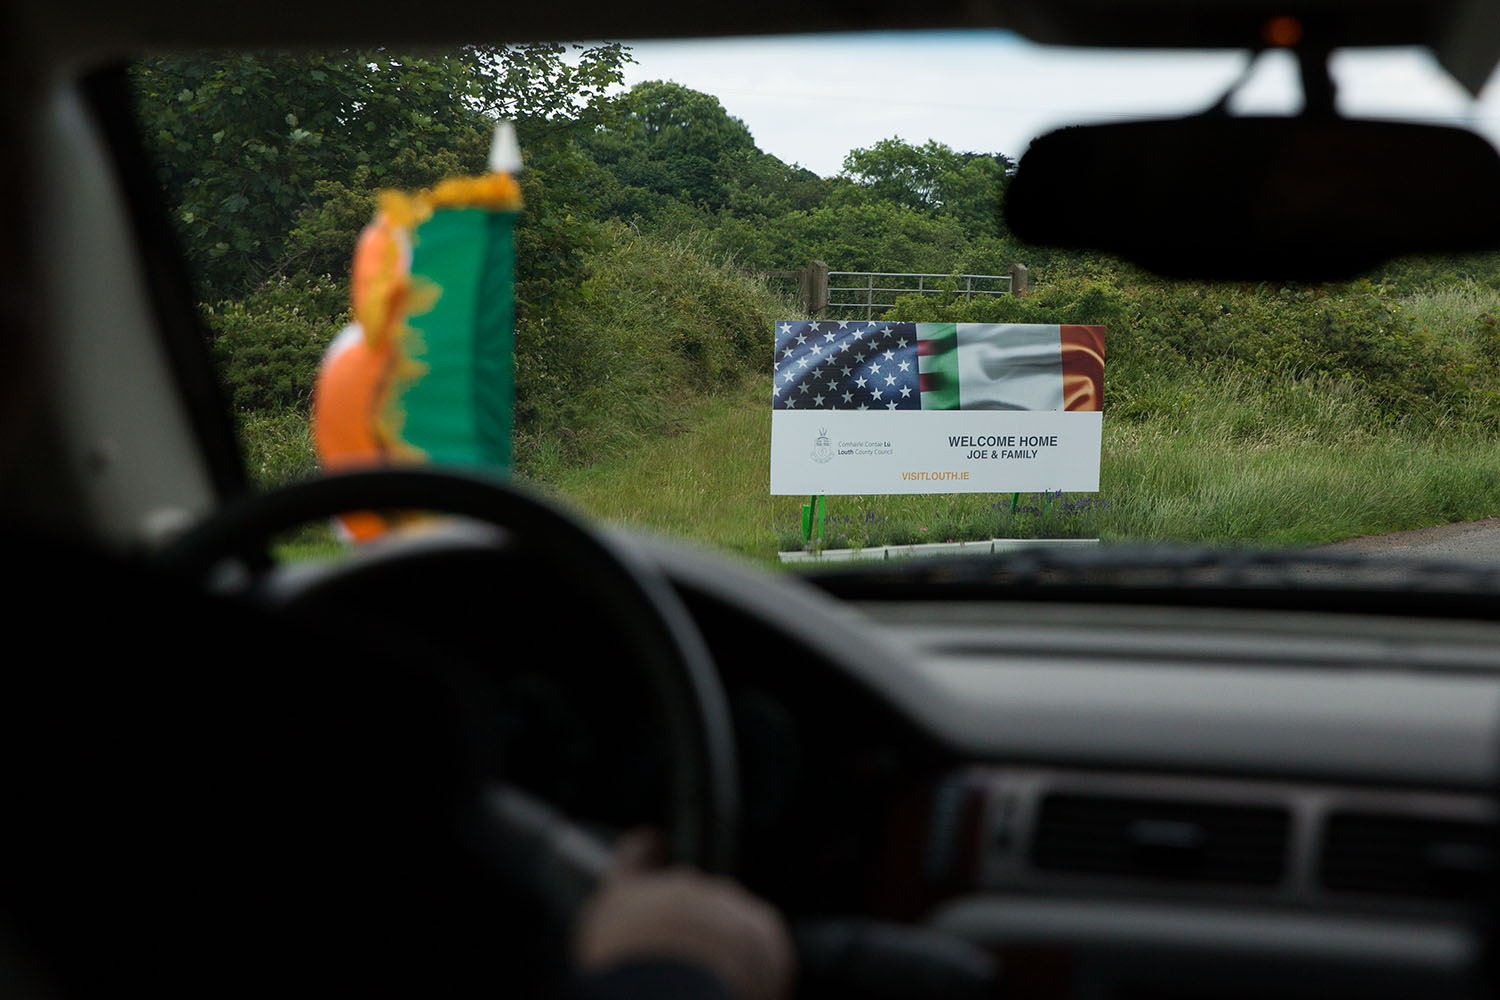 A sign along the side of the road welcomes Vice President Joe Biden and his family to County Louth, Ireland, June 25, 2016. (Official White House Photo by David Lienemann)